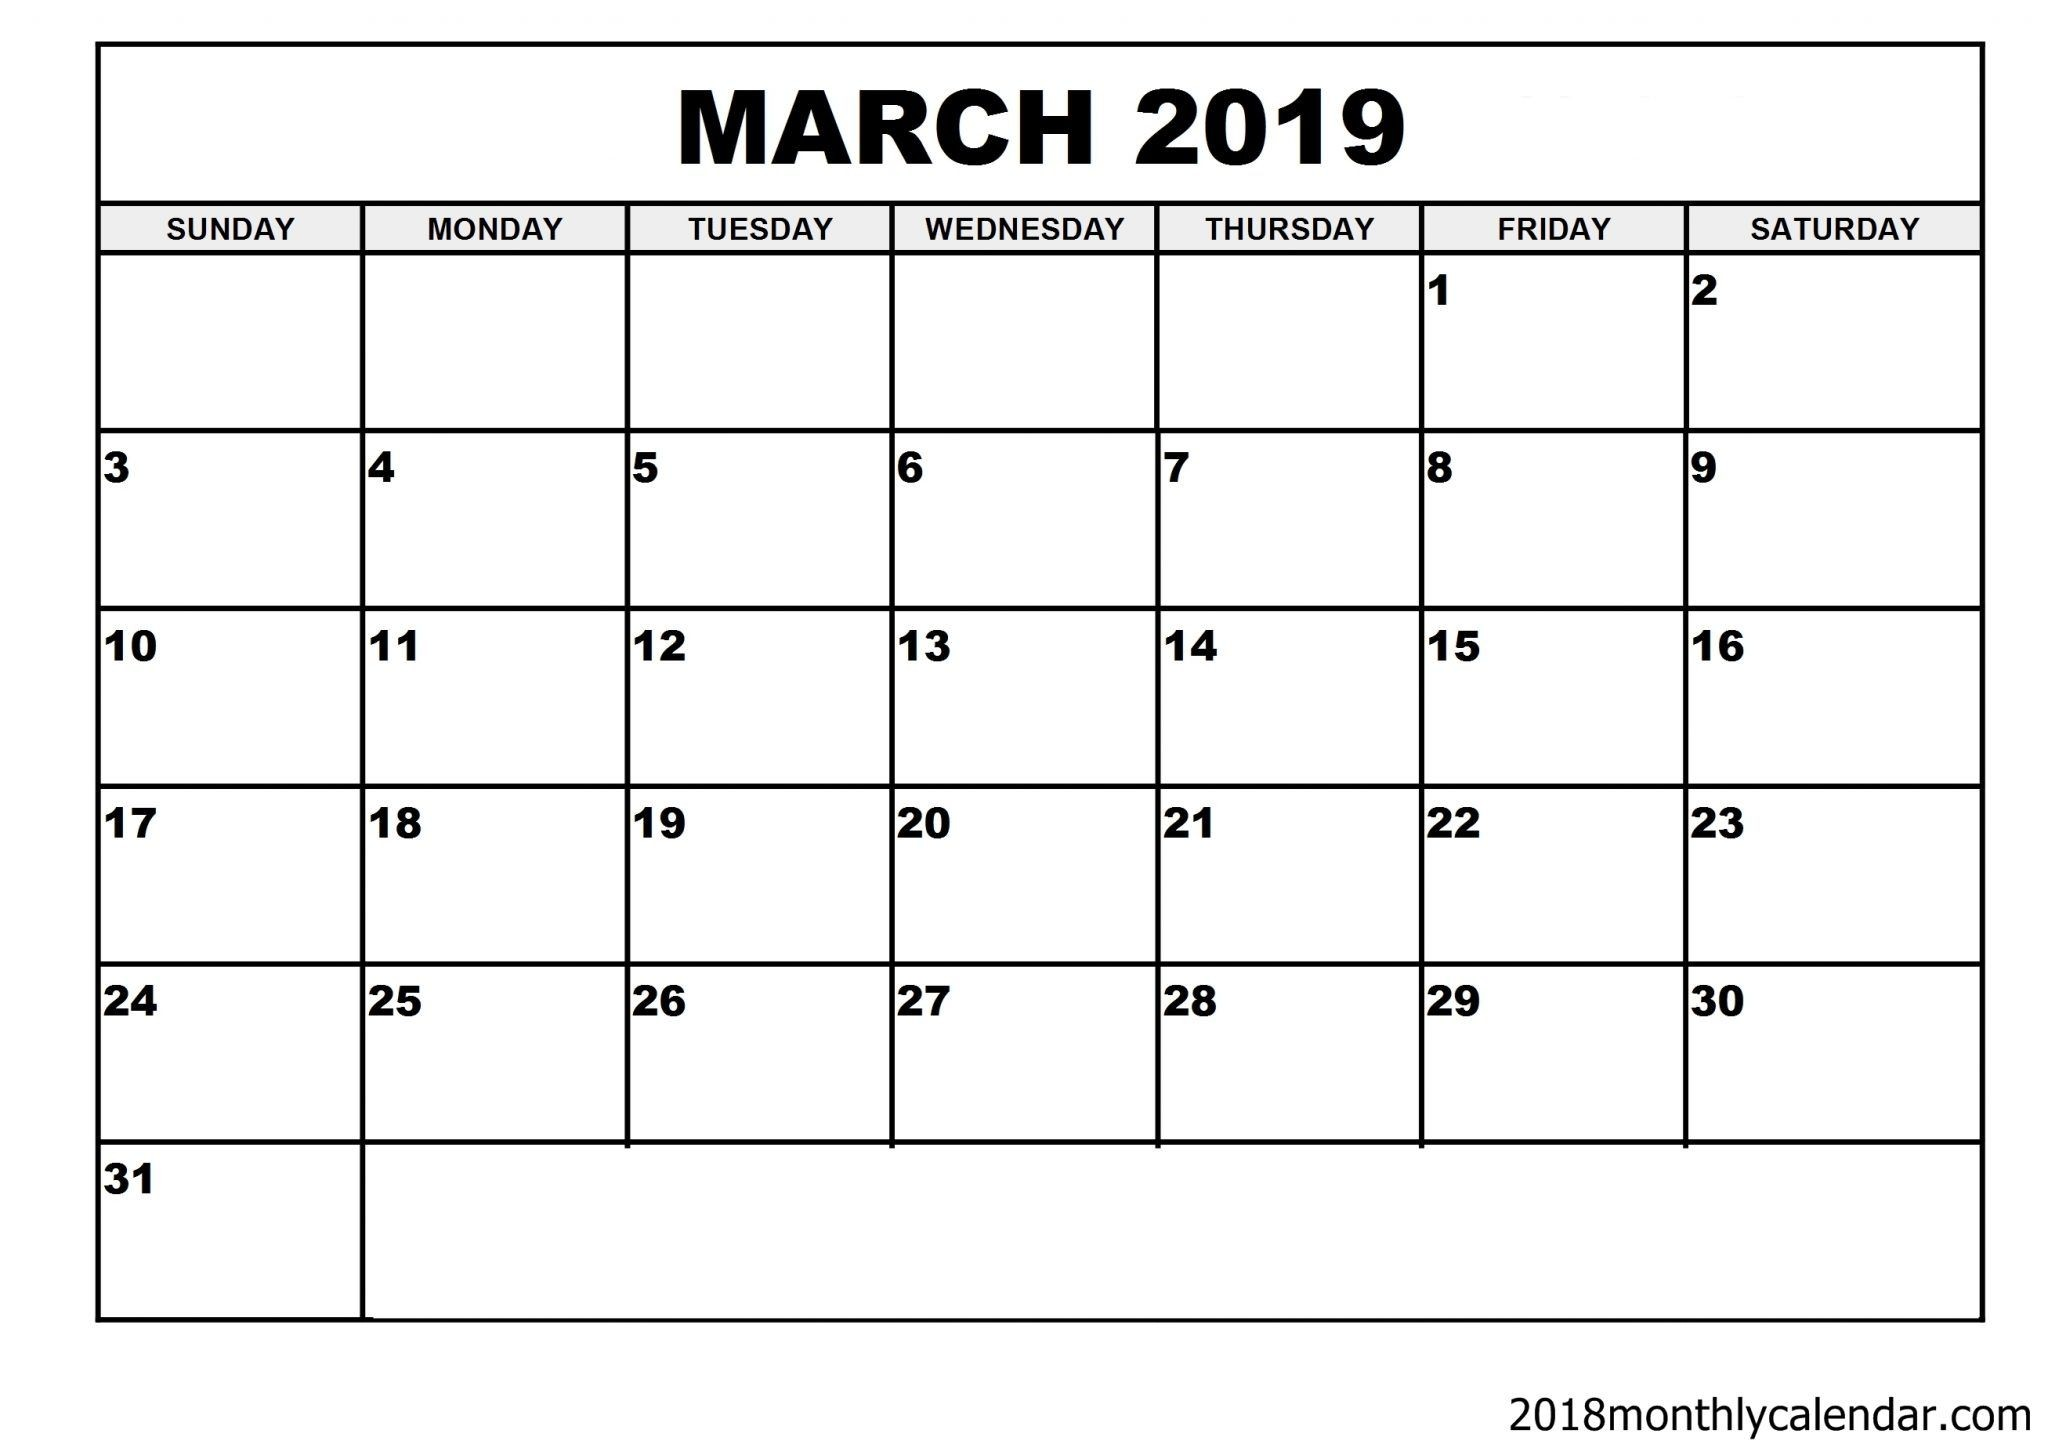 March Calendar Blank 2019 Más Arriba-a-fecha 150 Best Free March 2019 Calendar Printable Templates Images In 2019 Of March Calendar Blank 2019 Más Caliente 2019 March for Life Info